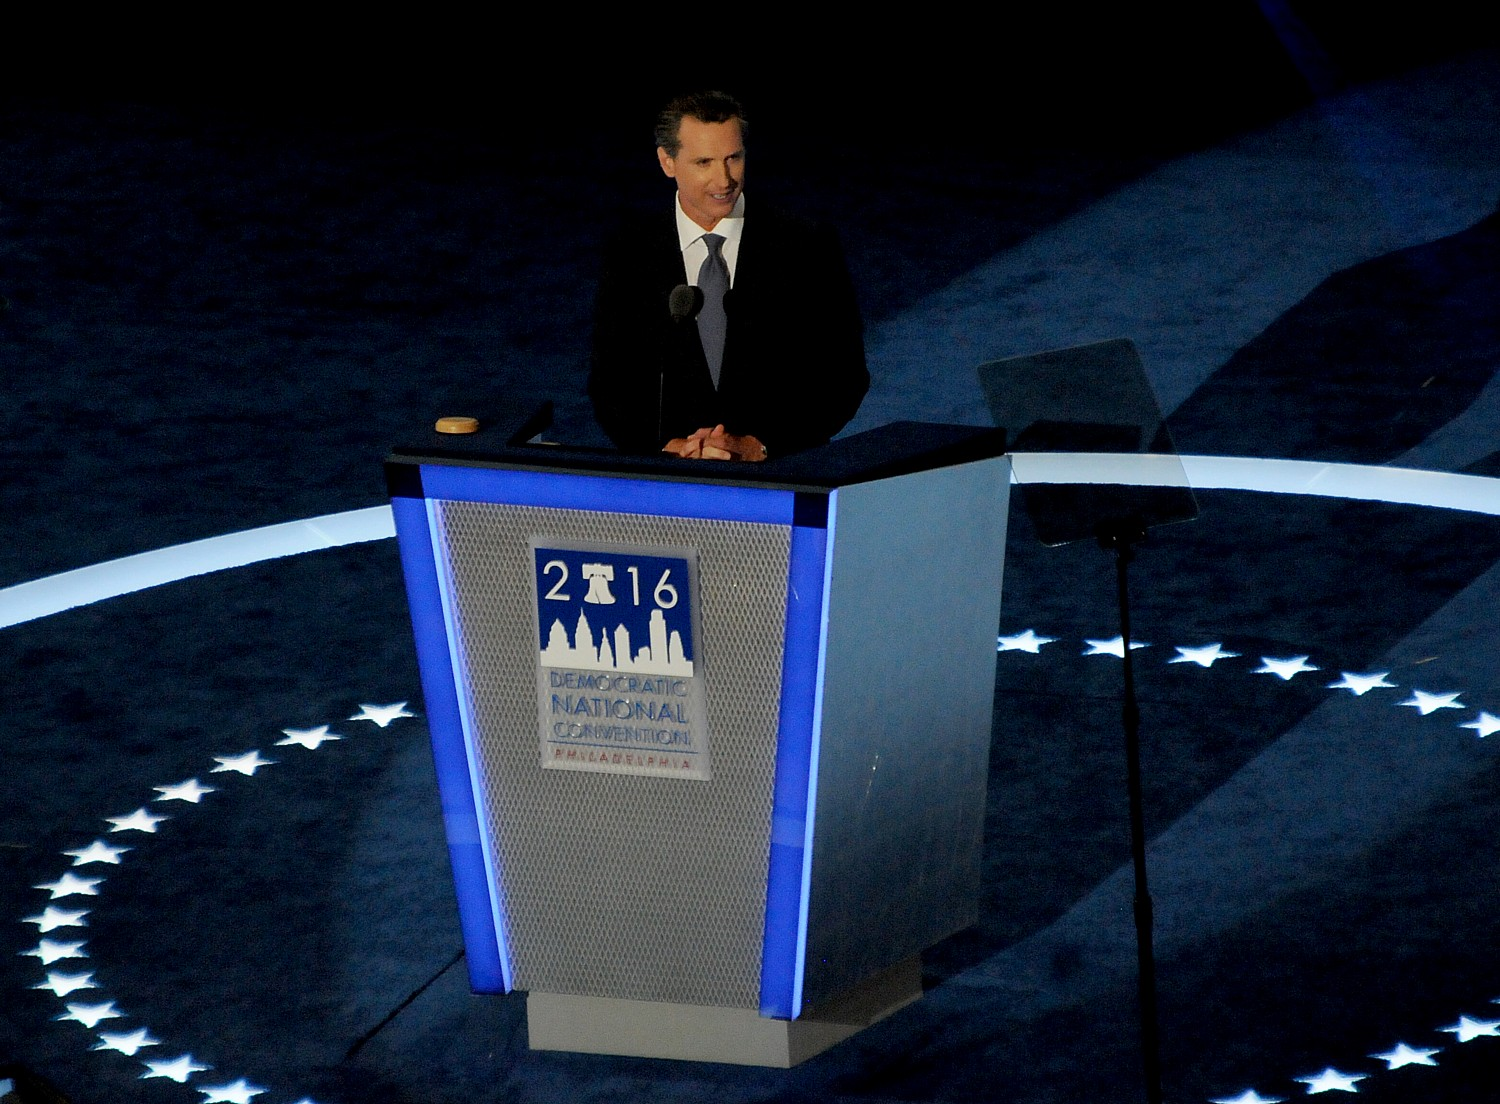 California's Lt. Governor Gavin Newsom addresses the Democratic National Convention in Philadelphia on July 27, 2016 © 2016 Karen Rubin/news-photos-features.com